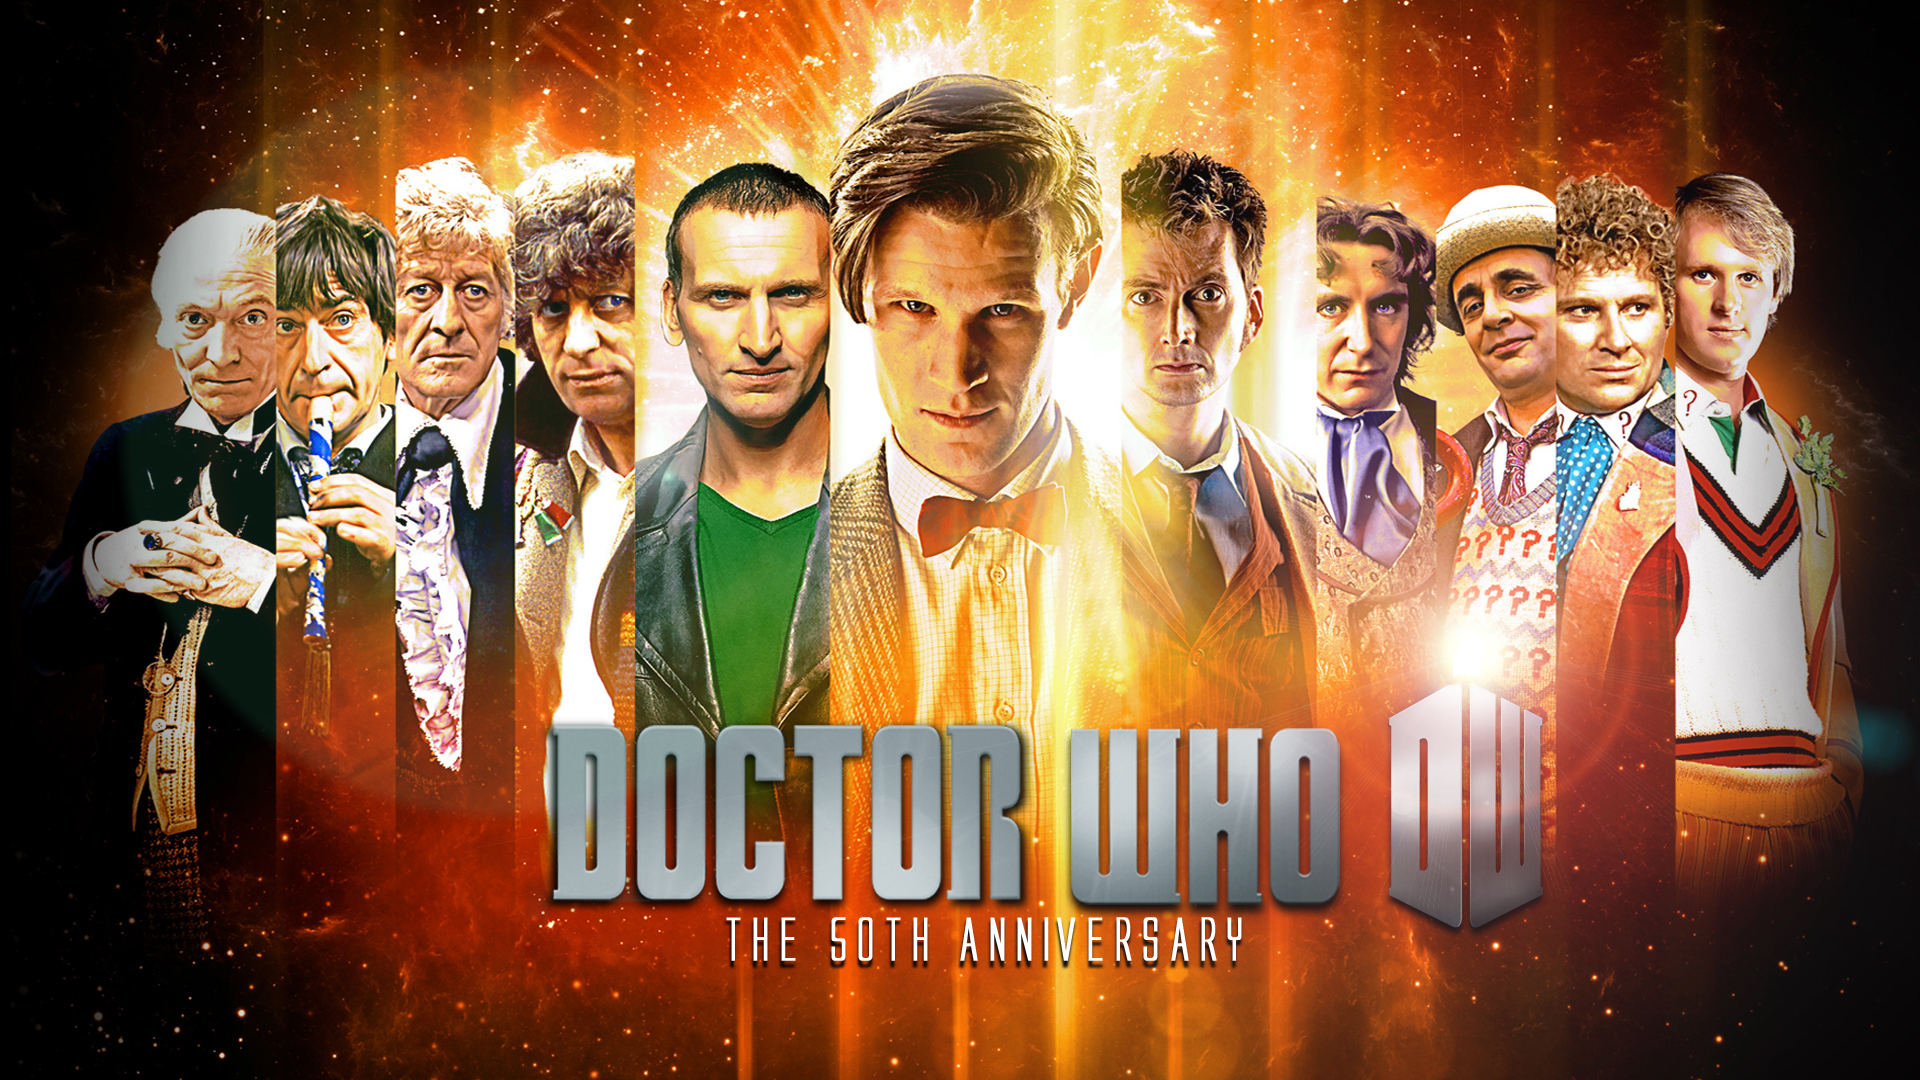 Doctor Who The 50th Anniversary Wallpaper doctor who 35308700